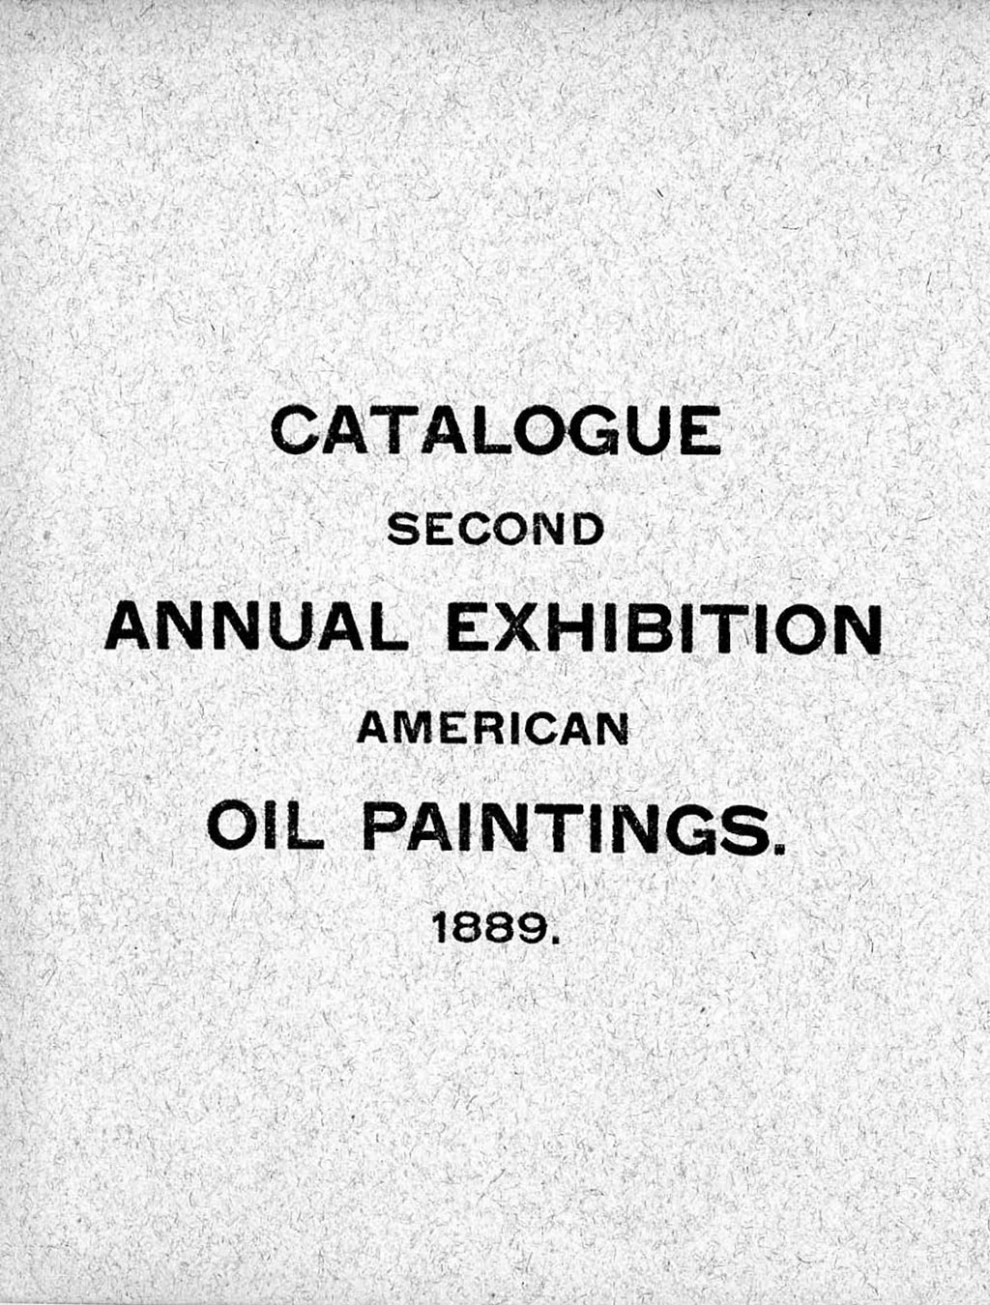 Annual exhibition of American oil paintings